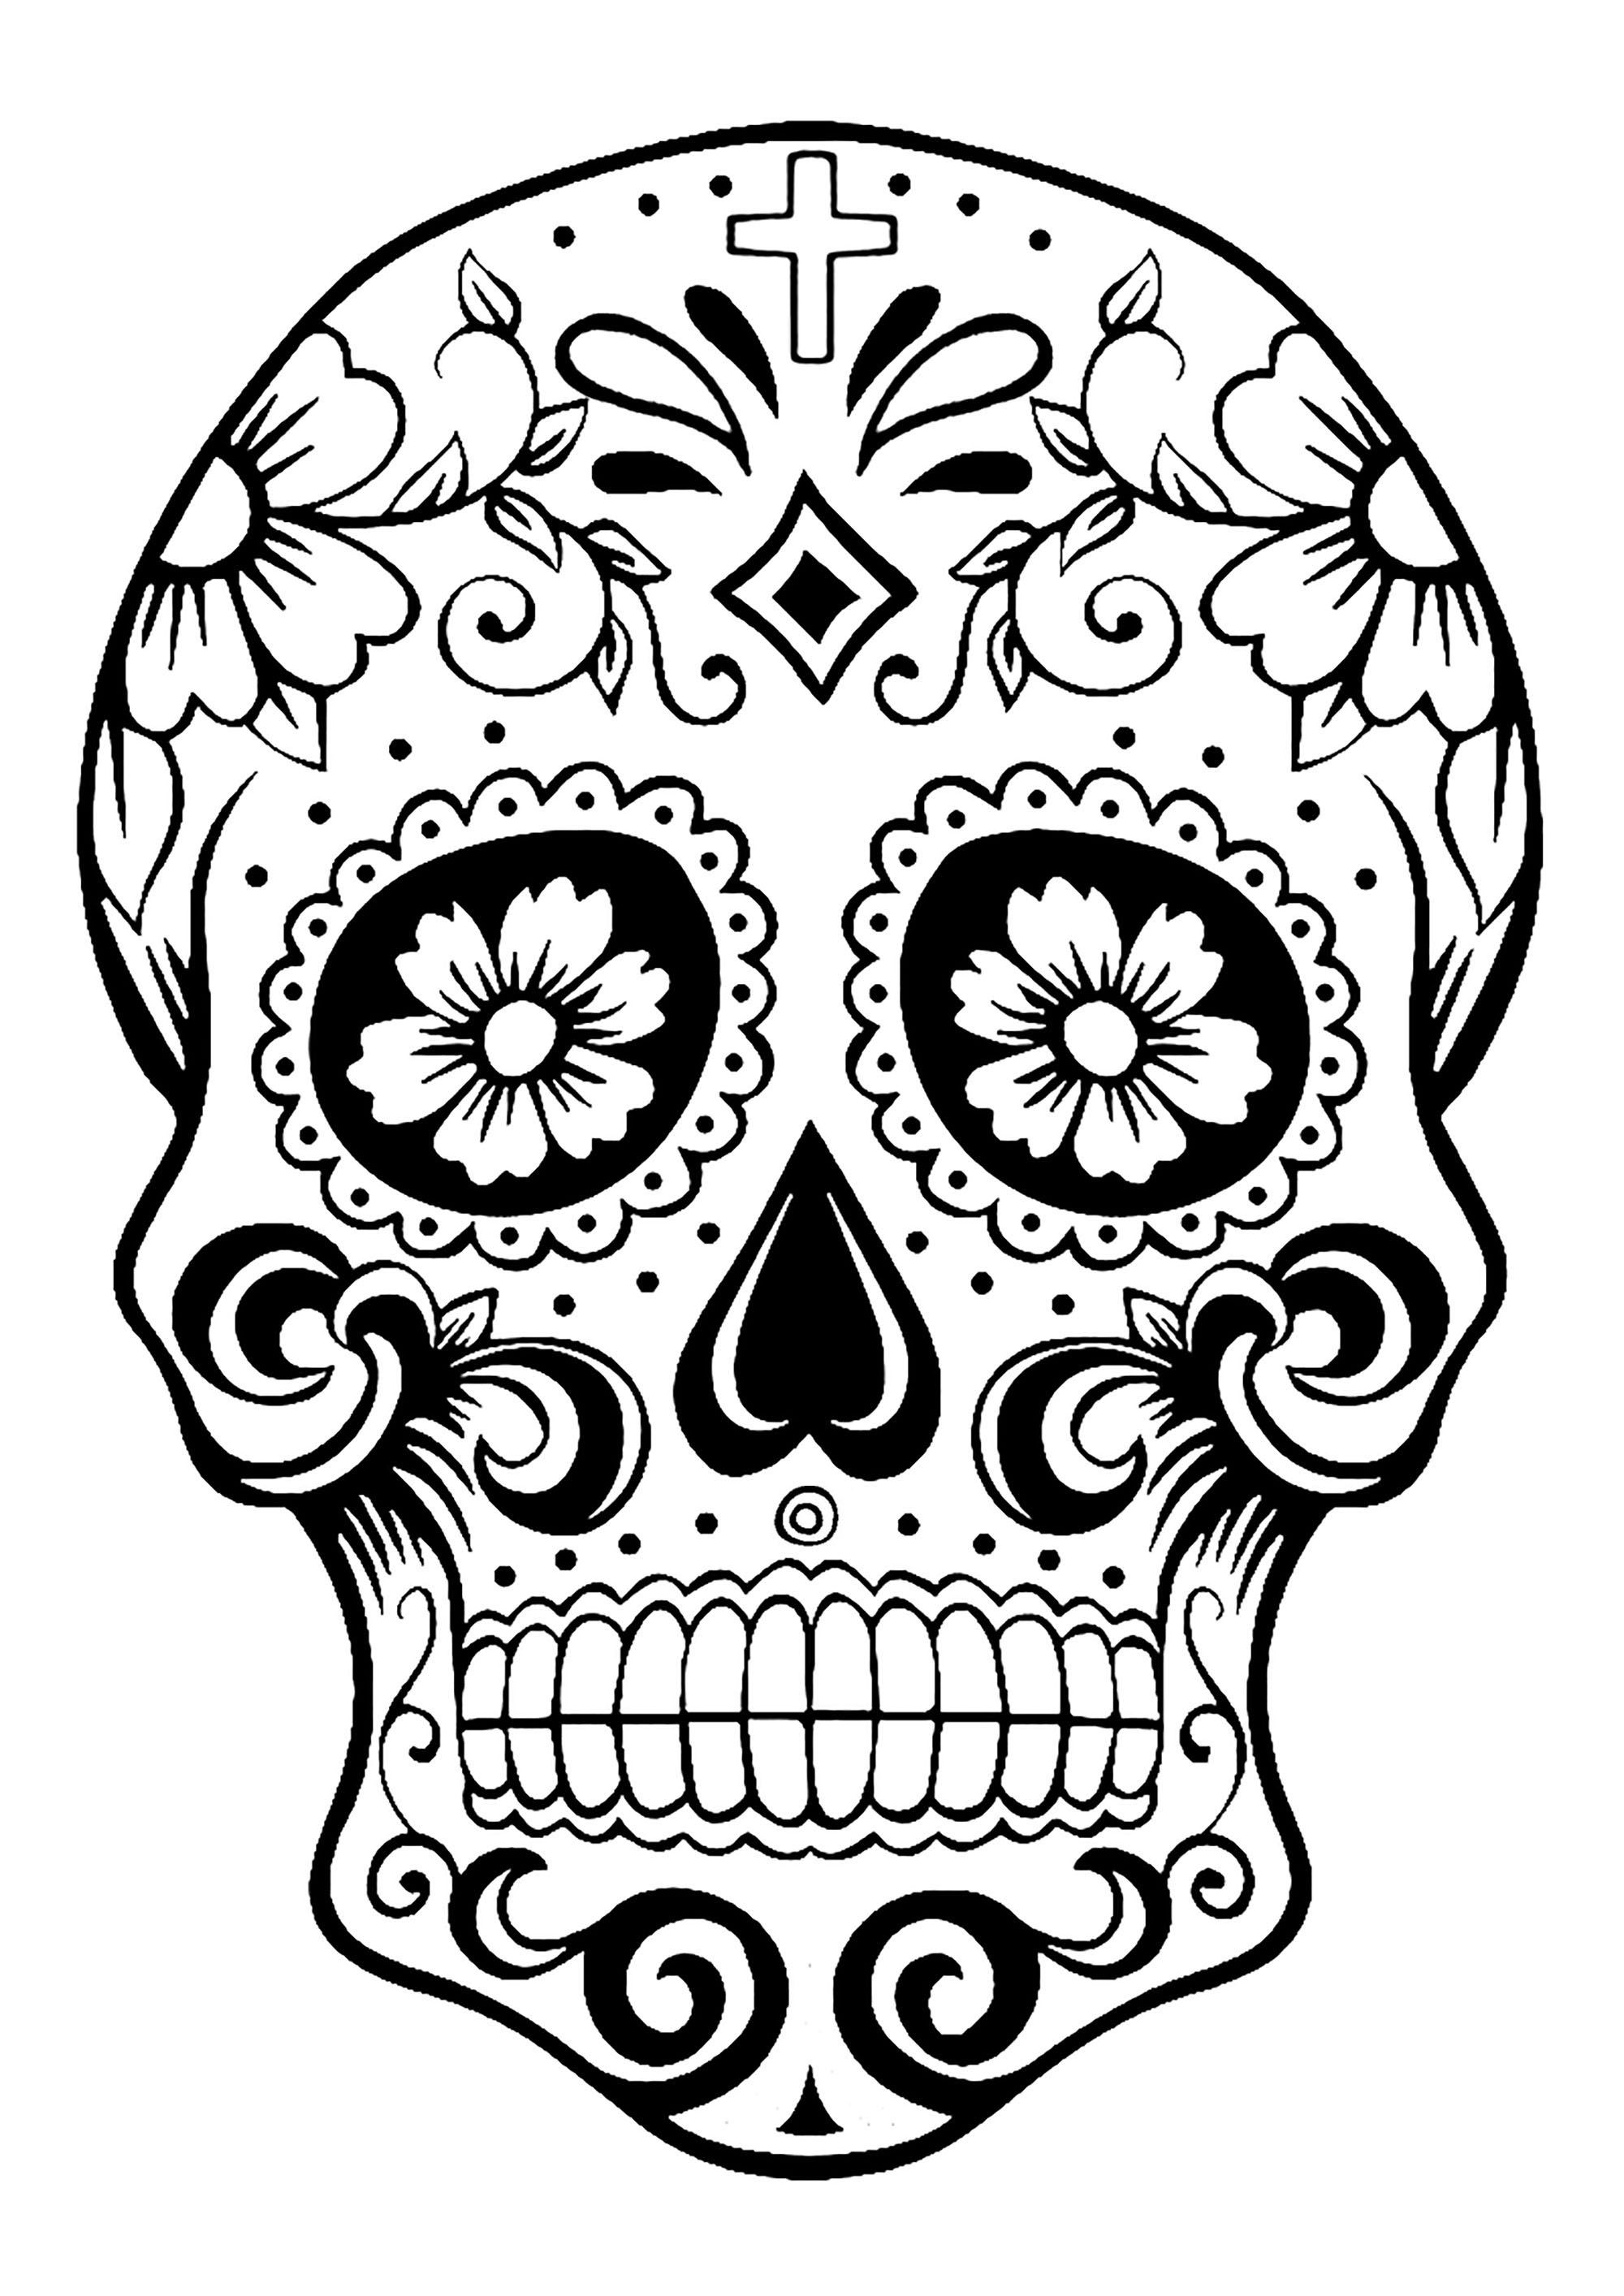 Santa Muerte Coloring Pages With El D A De Los Muertos Day Of The Dead Page Skull 2